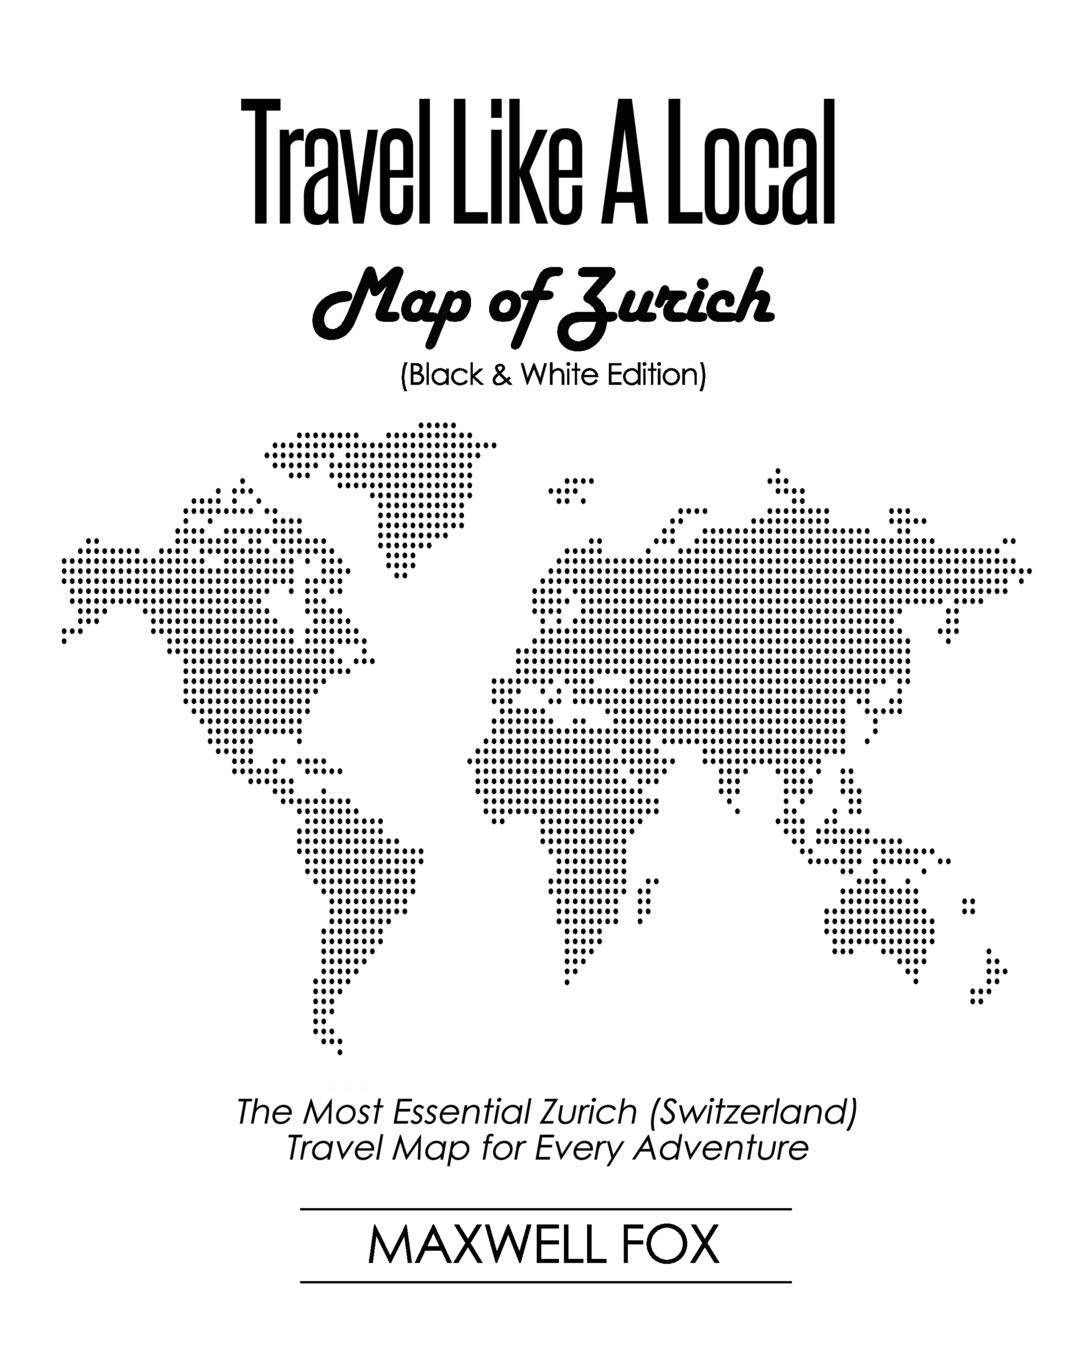 Travel Like a Local - Map of Zurich (Black and White Edition): The on montreux switzerland map, rhine river map, seoul korea map, geneva map, zermatt village map, edinburgh scotland map, europe map, zurich google map, france map, zurich language, madrid spain map, austria map, zurich world map, bern switzerland map, brugg switzerland map, basel switzerland map, pfaffikon switzerland map, barcelona map, paris switzerland map, switzerland on a map,